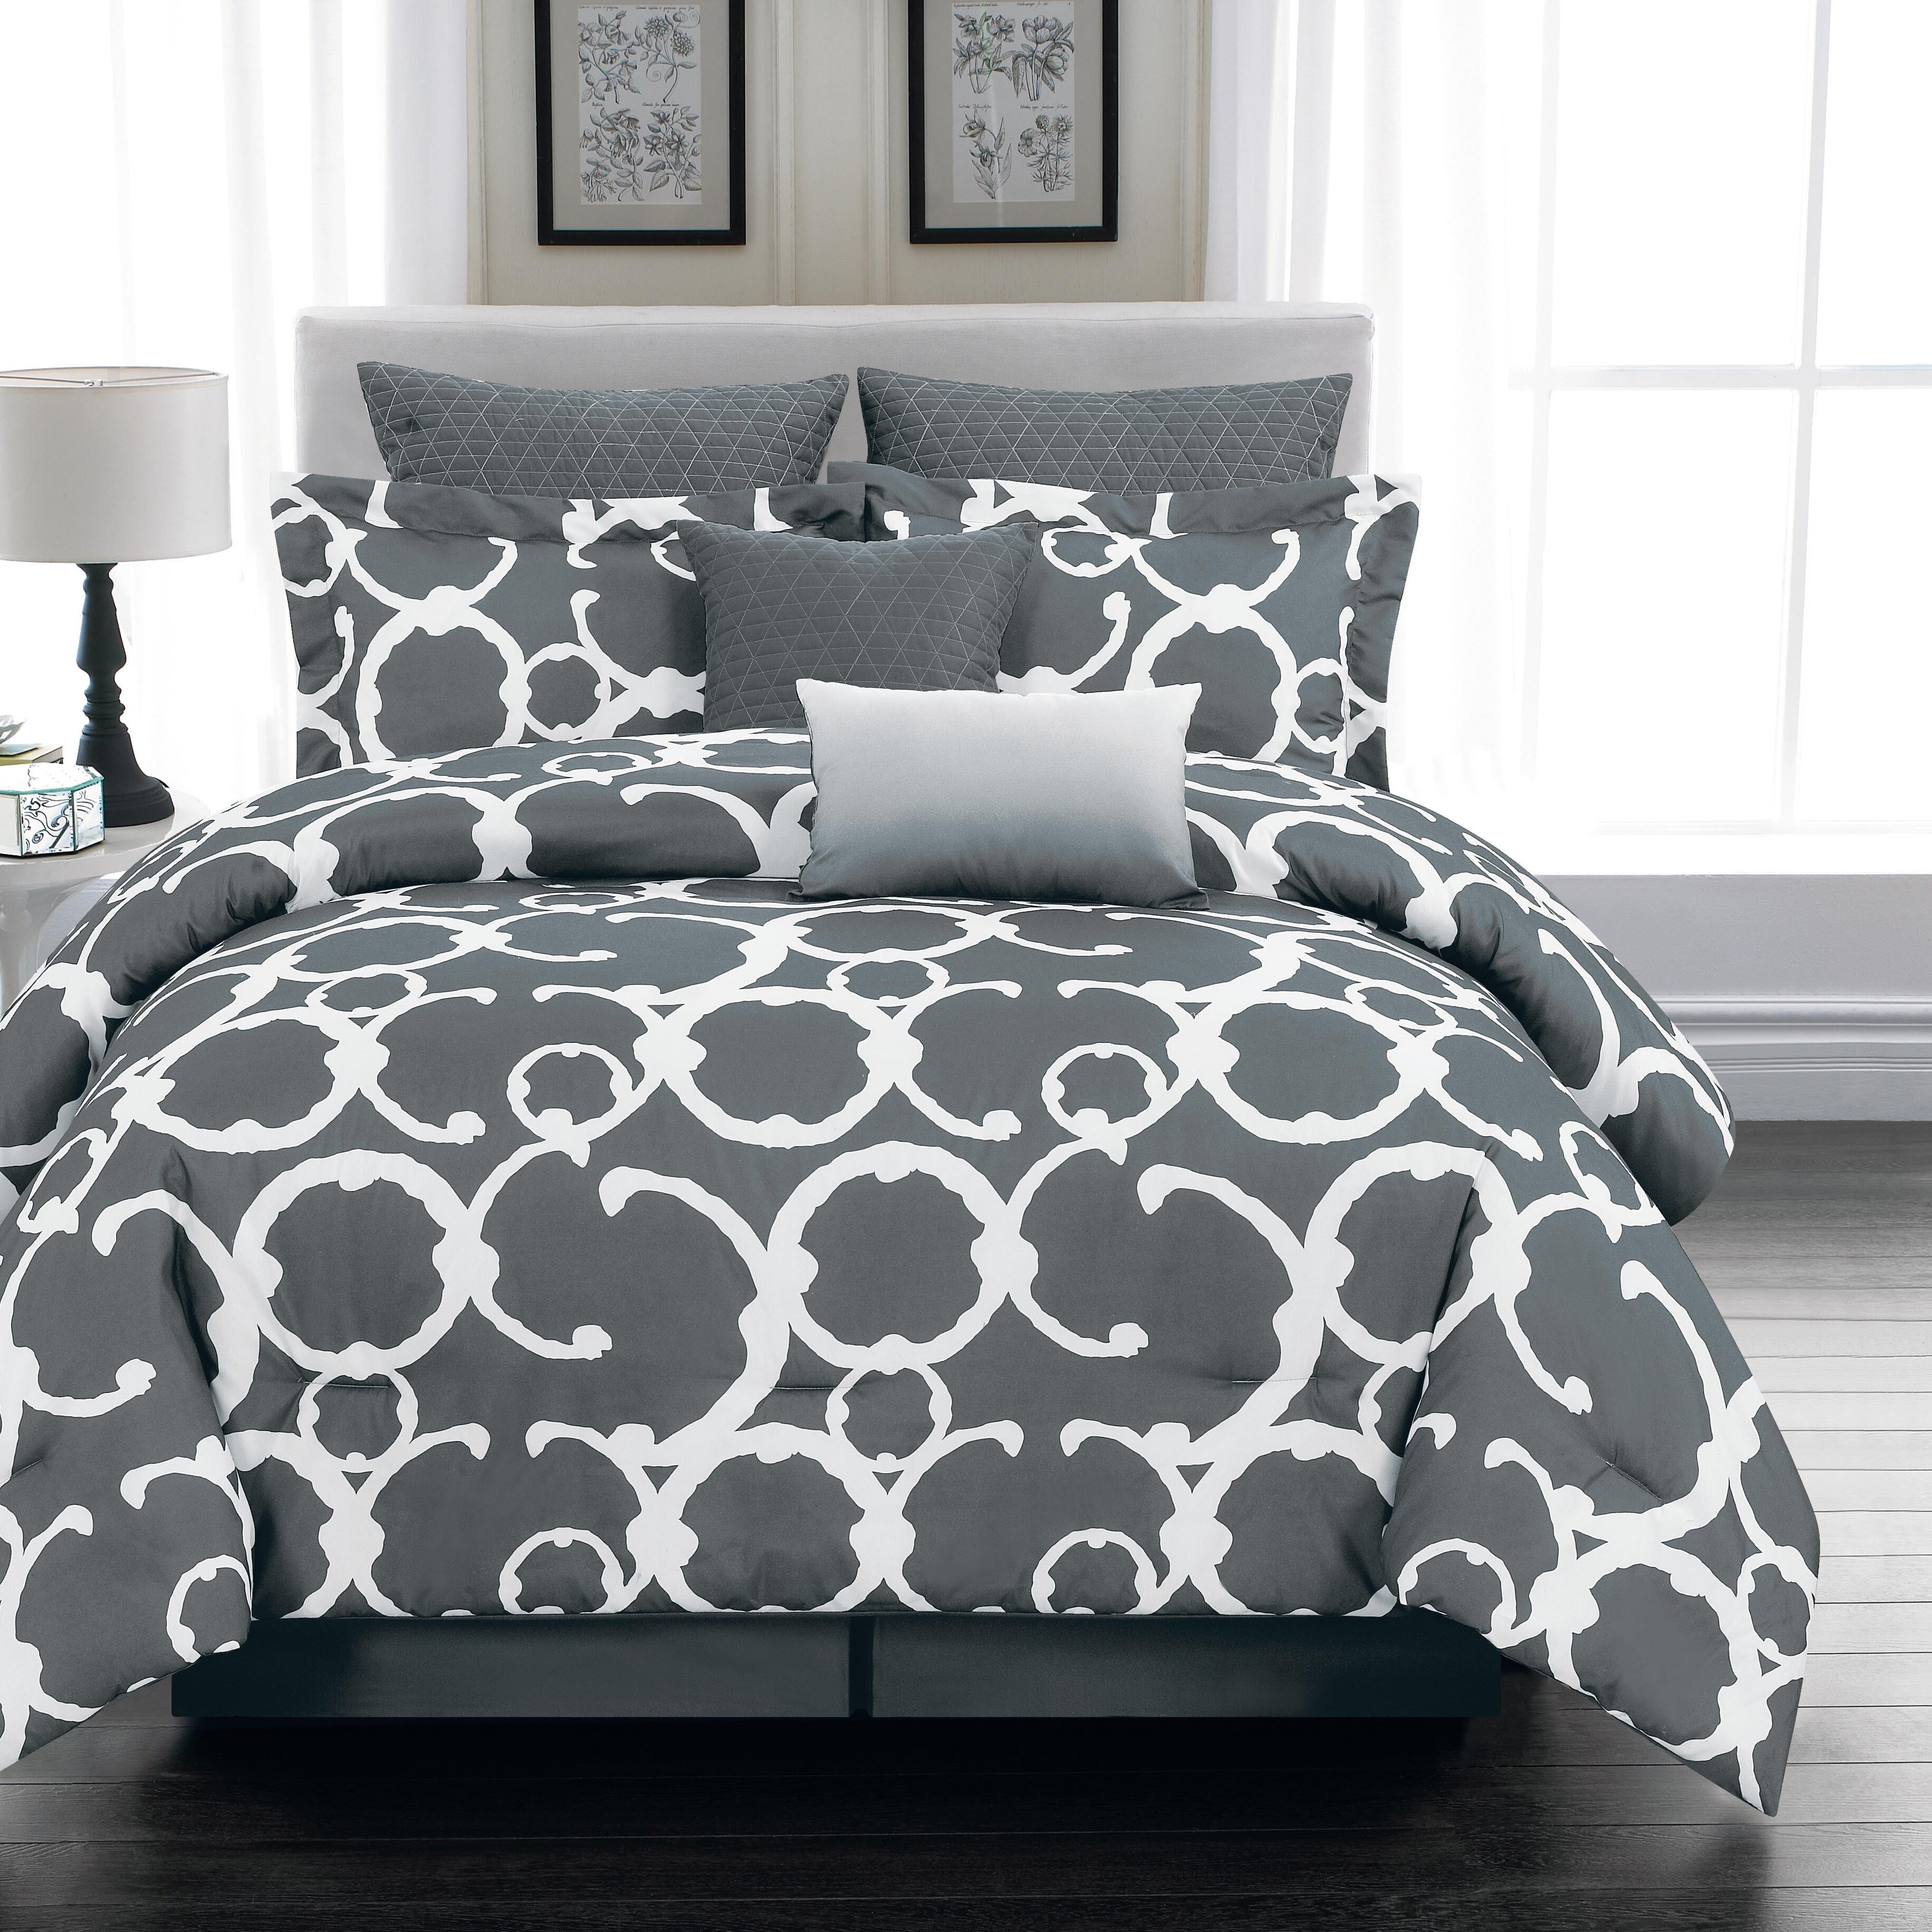 Geometric Winston Porter Comforters Sets You Ll Love In 2021 Wayfair